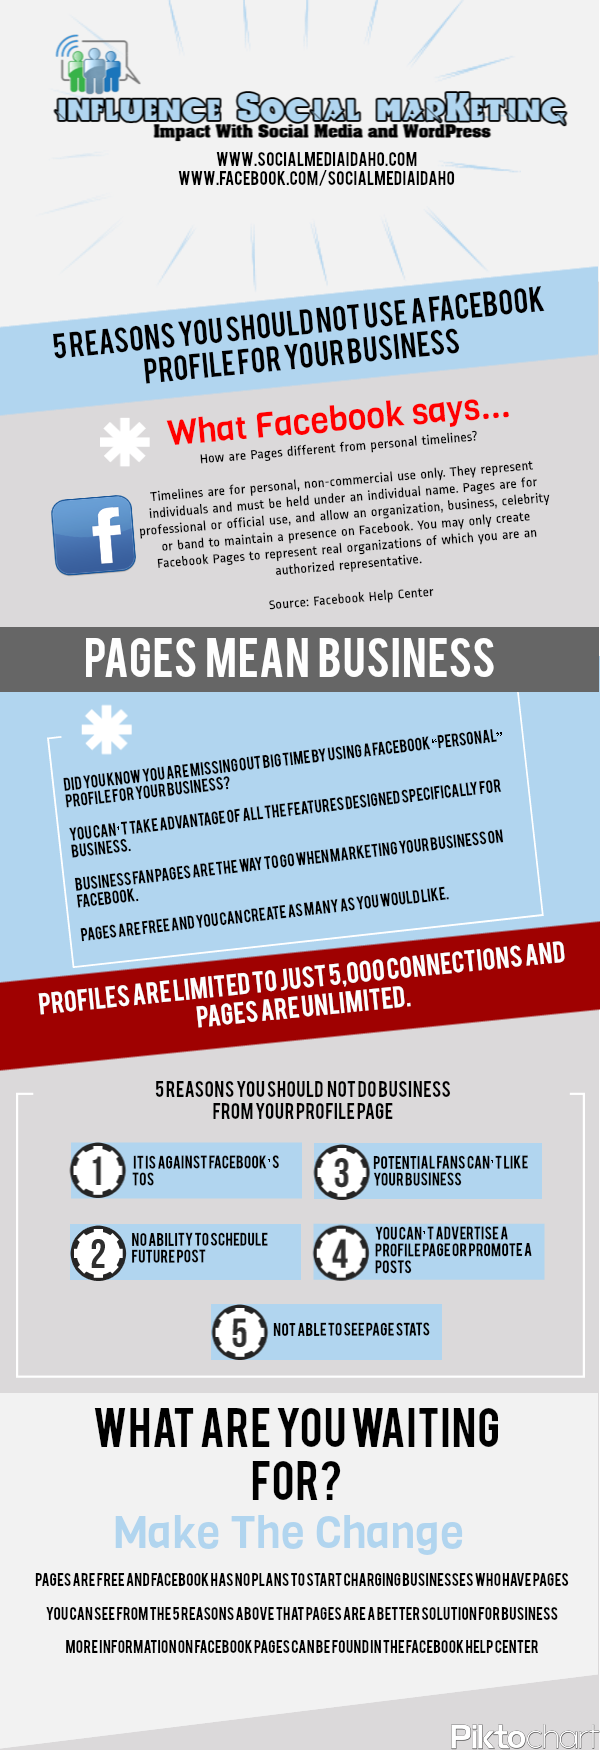 5 Reasons You Shouldn Not Use A Facebook Profile For Your Business